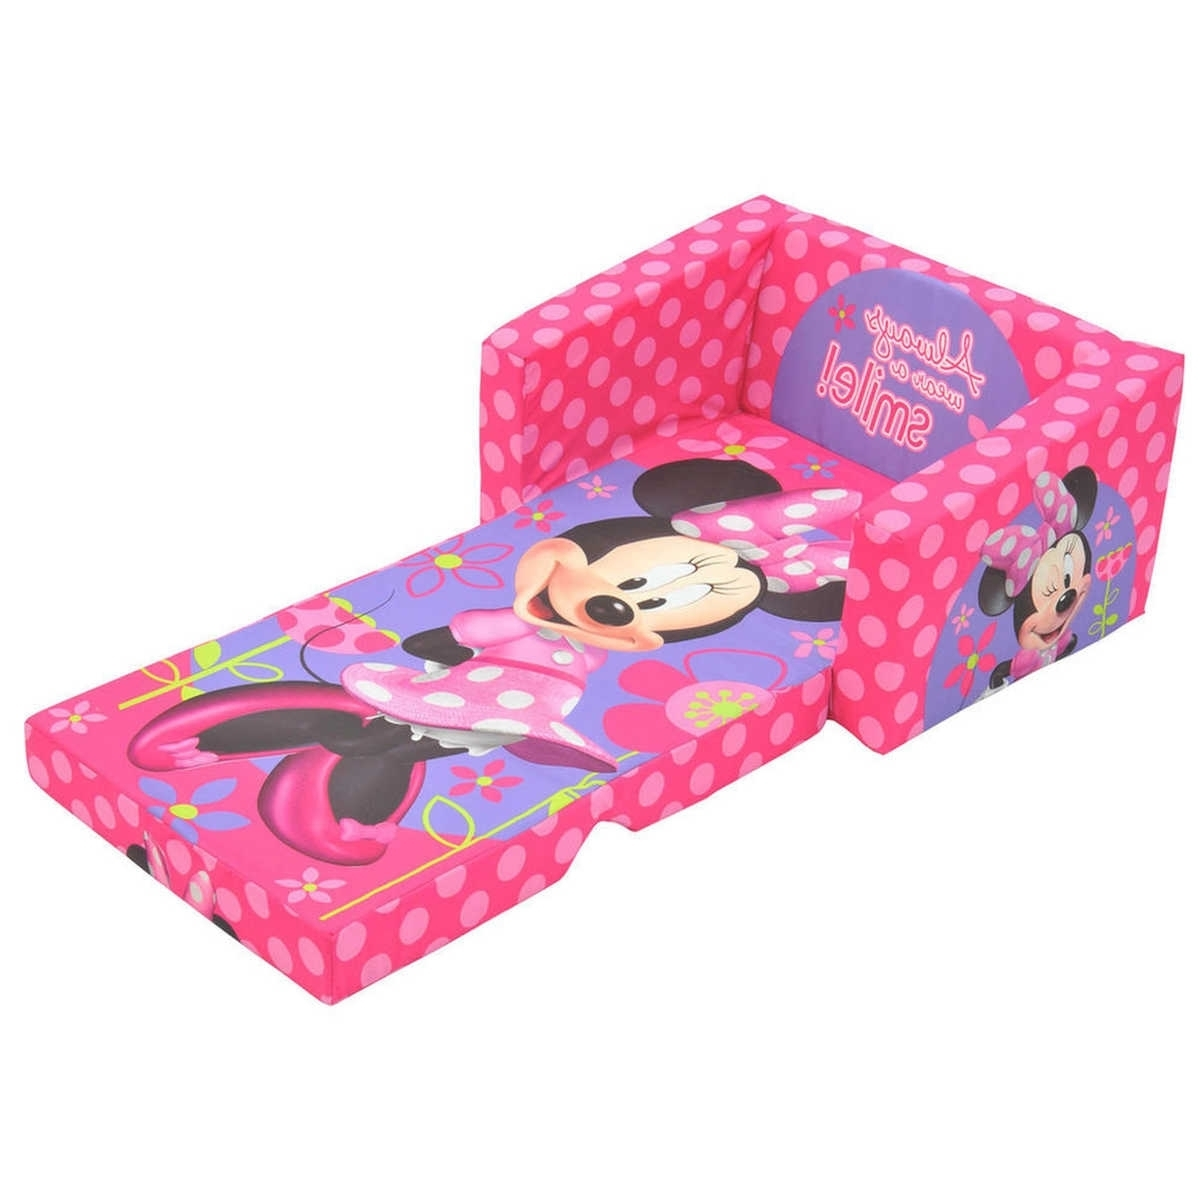 Minnie Mouse Flip Out Sofa Bed • Sofa Bed Pertaining To Latest Flip Out Sofas (View 6 of 20)